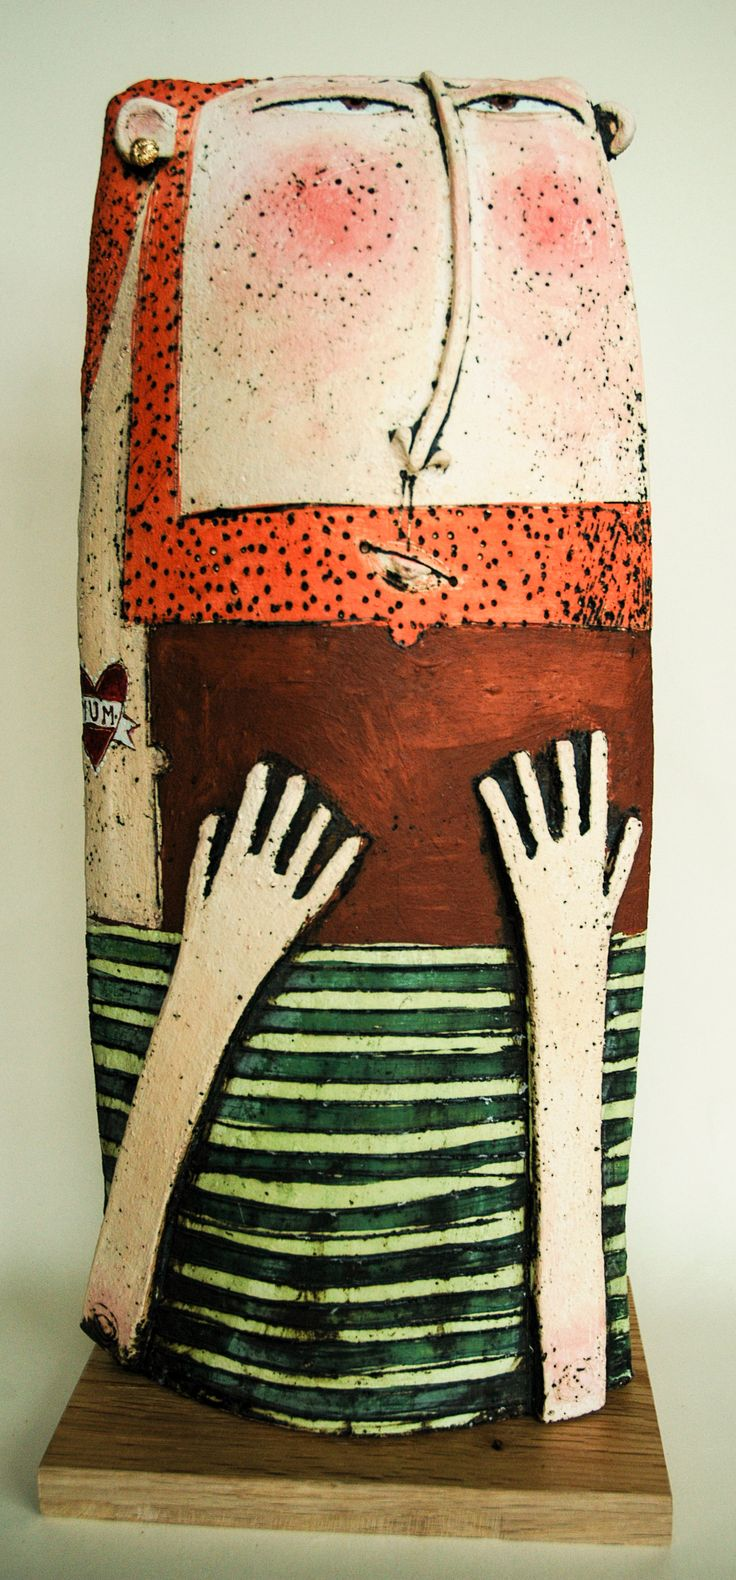 Sarah Saunders ceramic figures are quirky and fun; if your Dad is too this could be the perfect gift!